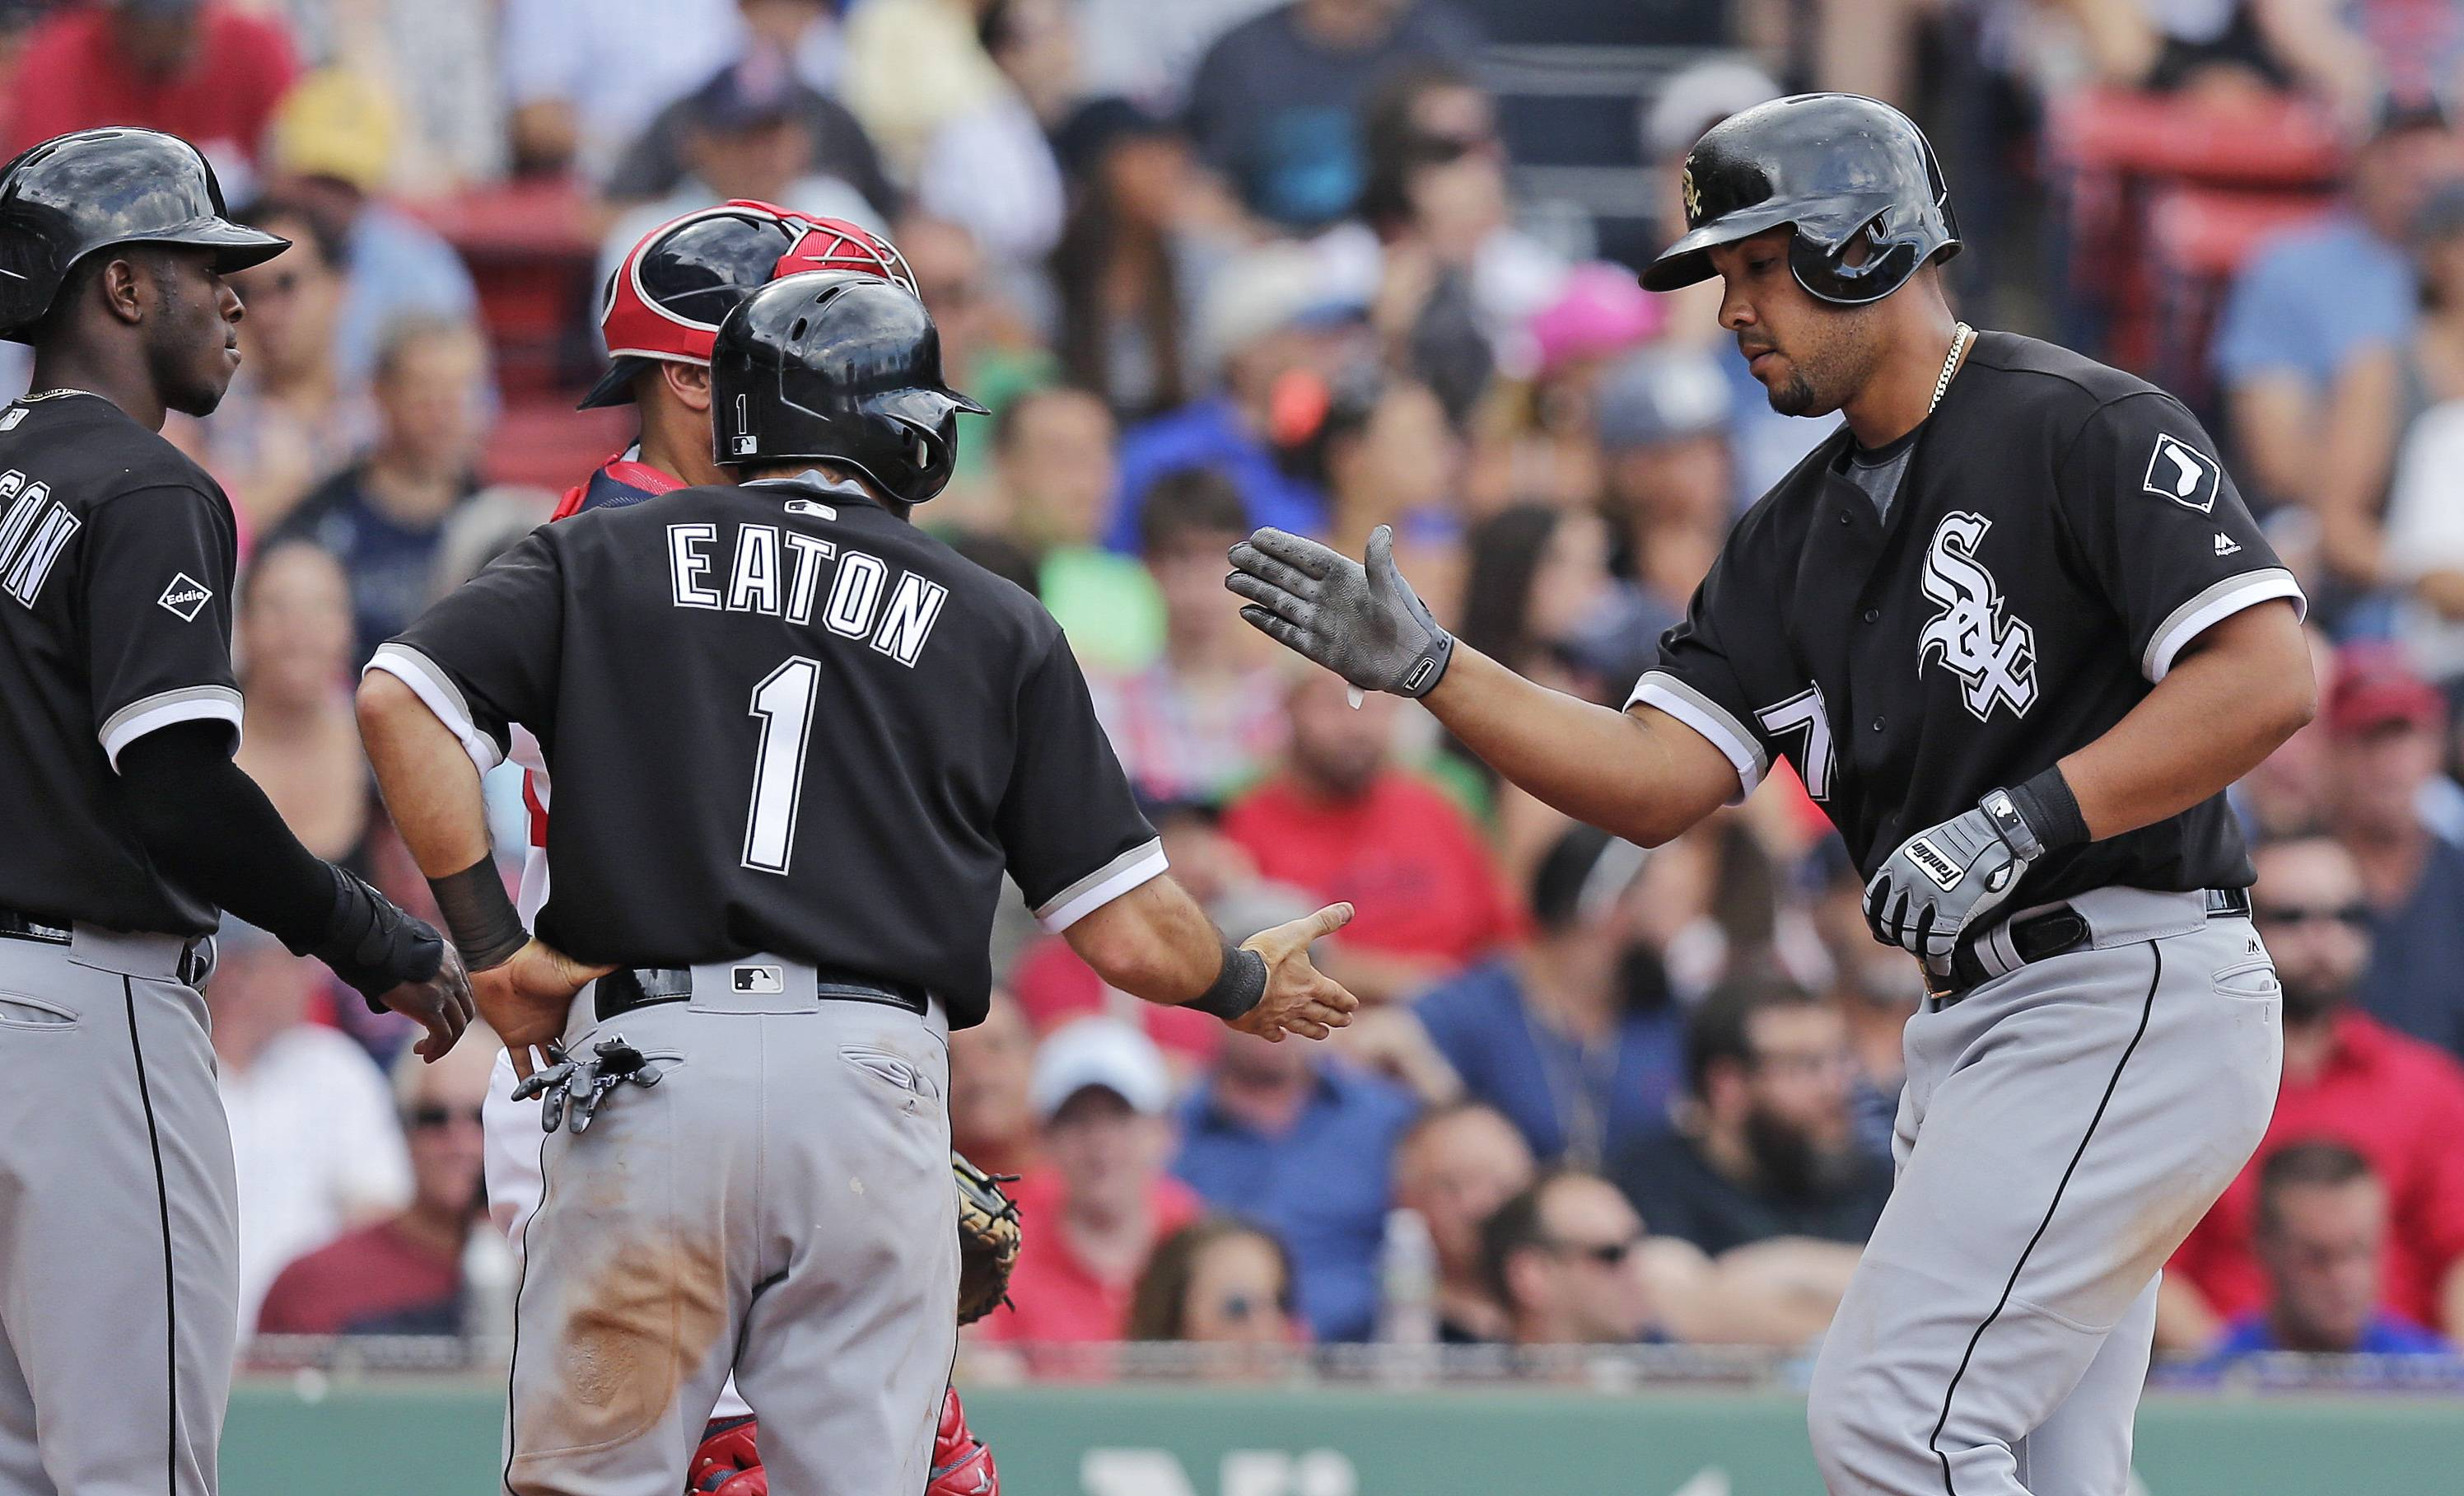 Chicago White Sox's Jose Abreu, right, is congratulated after his three-run home run off Boston Red Sox relief pitcher Junichi Tazawa during the seventh inning of a baseball game at Fenway Park, Thursday, June 23, 2016, in Boston. (AP Photo/Charles Krupa)